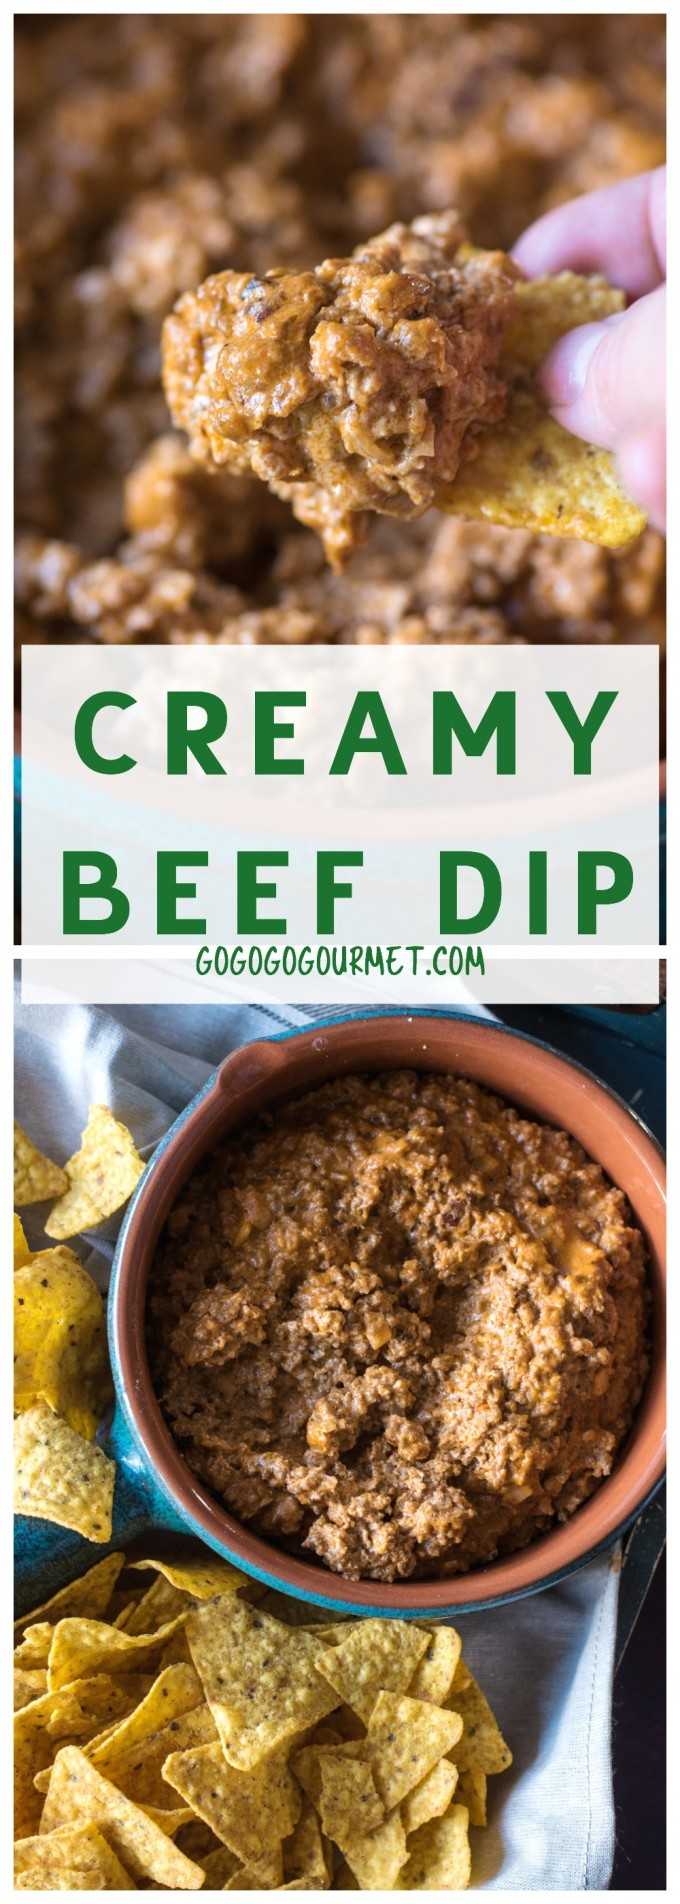 This Creamy Beef Dip is fast, easy and ALWAYS a hit. Not to be missed!! | @gogogogourmet via @gogogogourmet